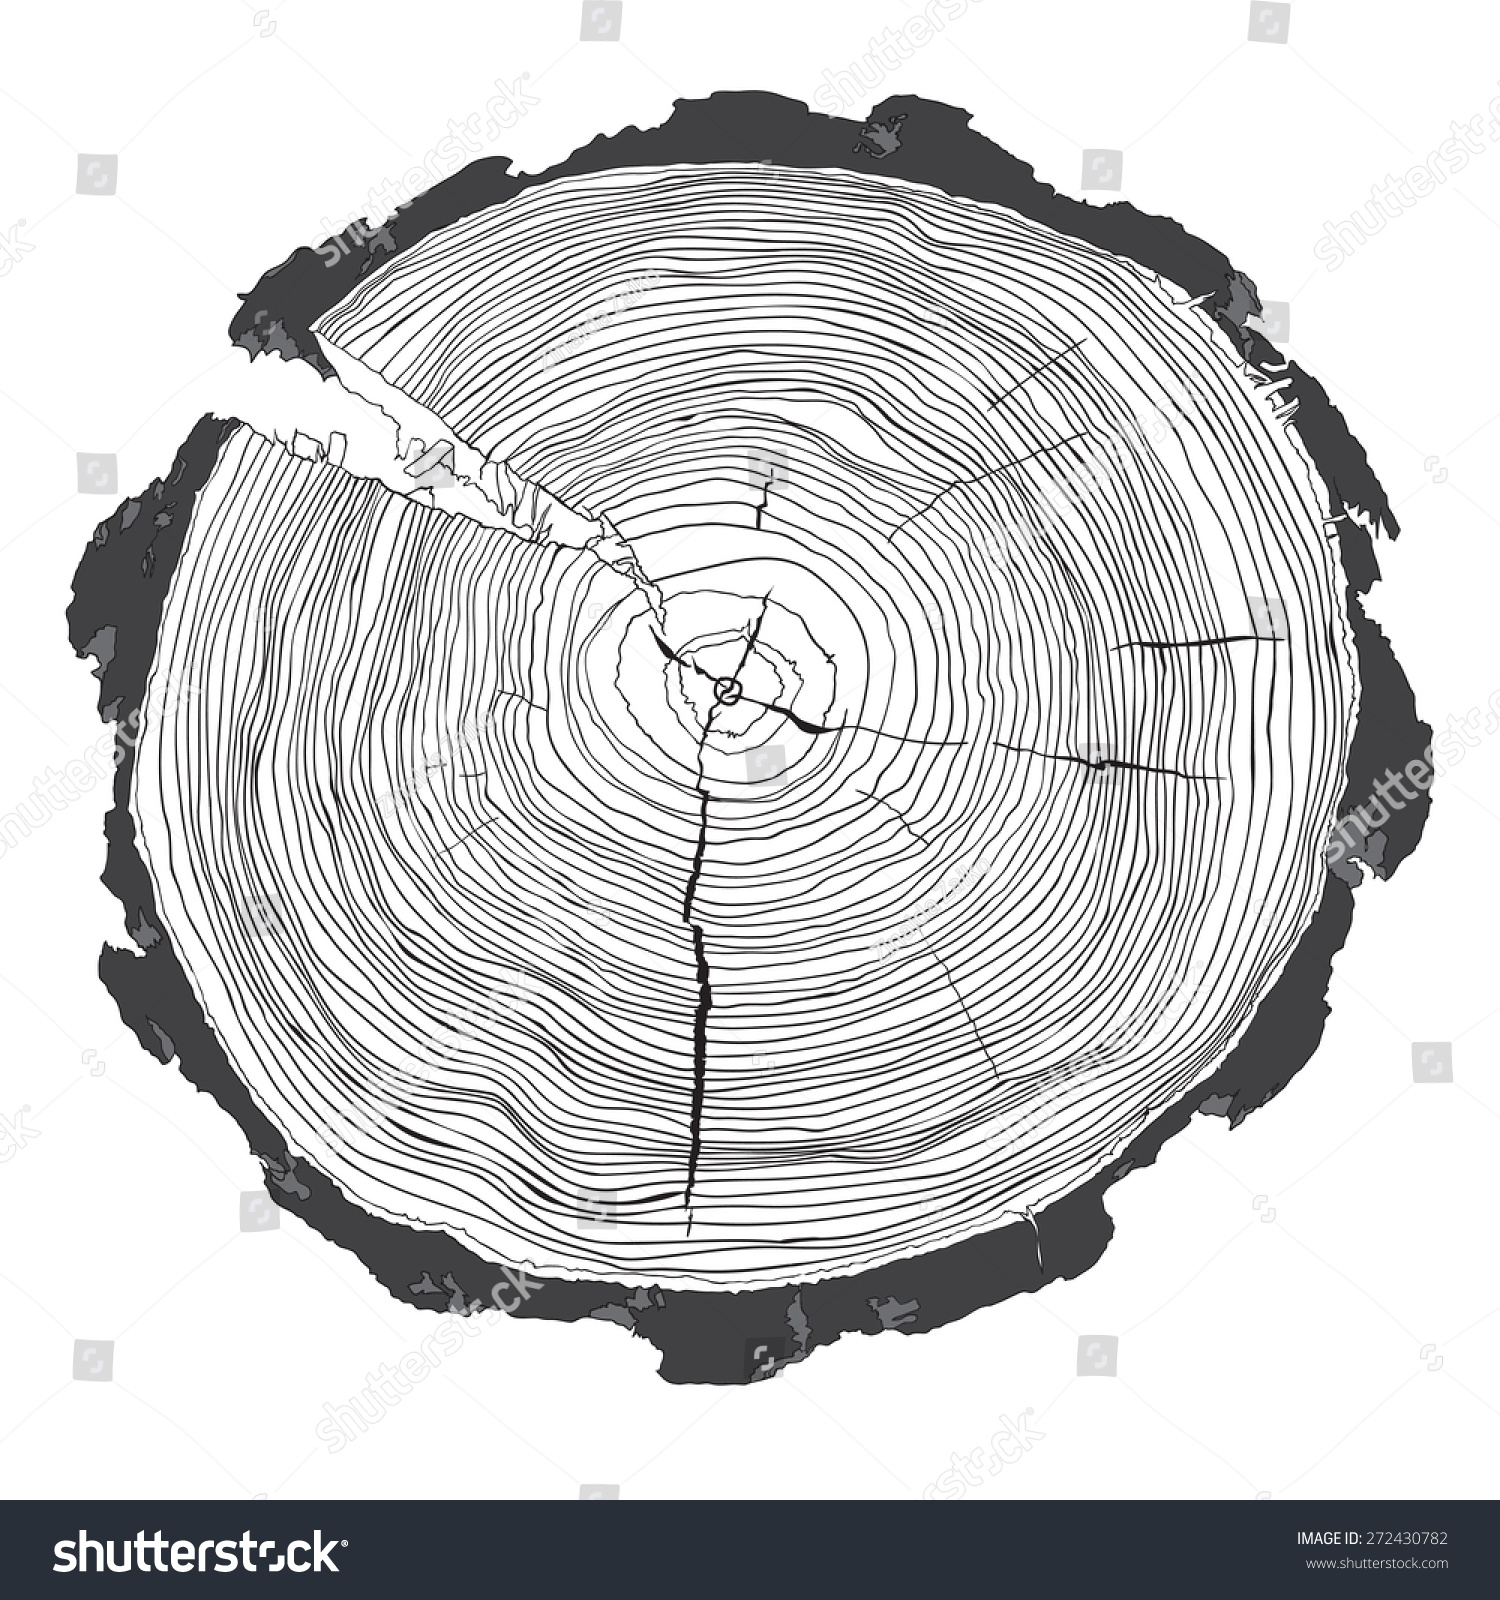 Annual Tree Growth Rings Grayscale Drawing Stock Vector